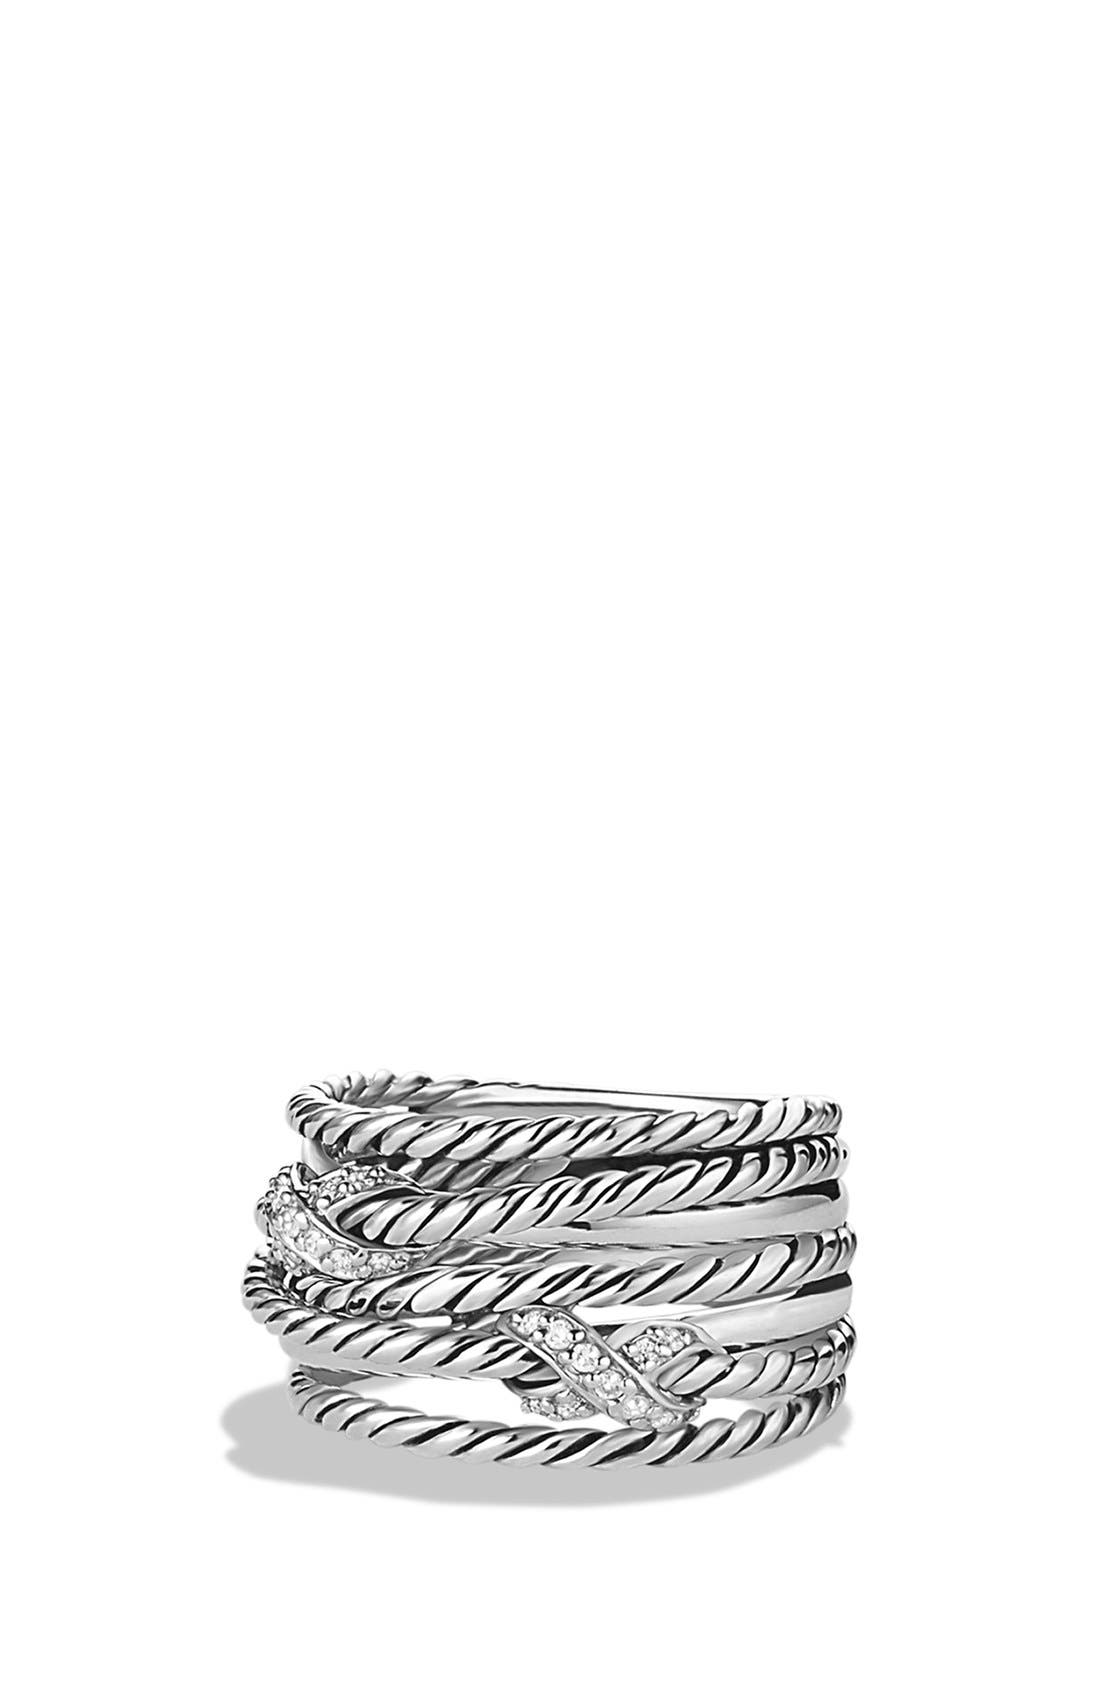 Alternate Image 1 Selected - David Yurman Double 'X Crossover' Ring with Diamonds